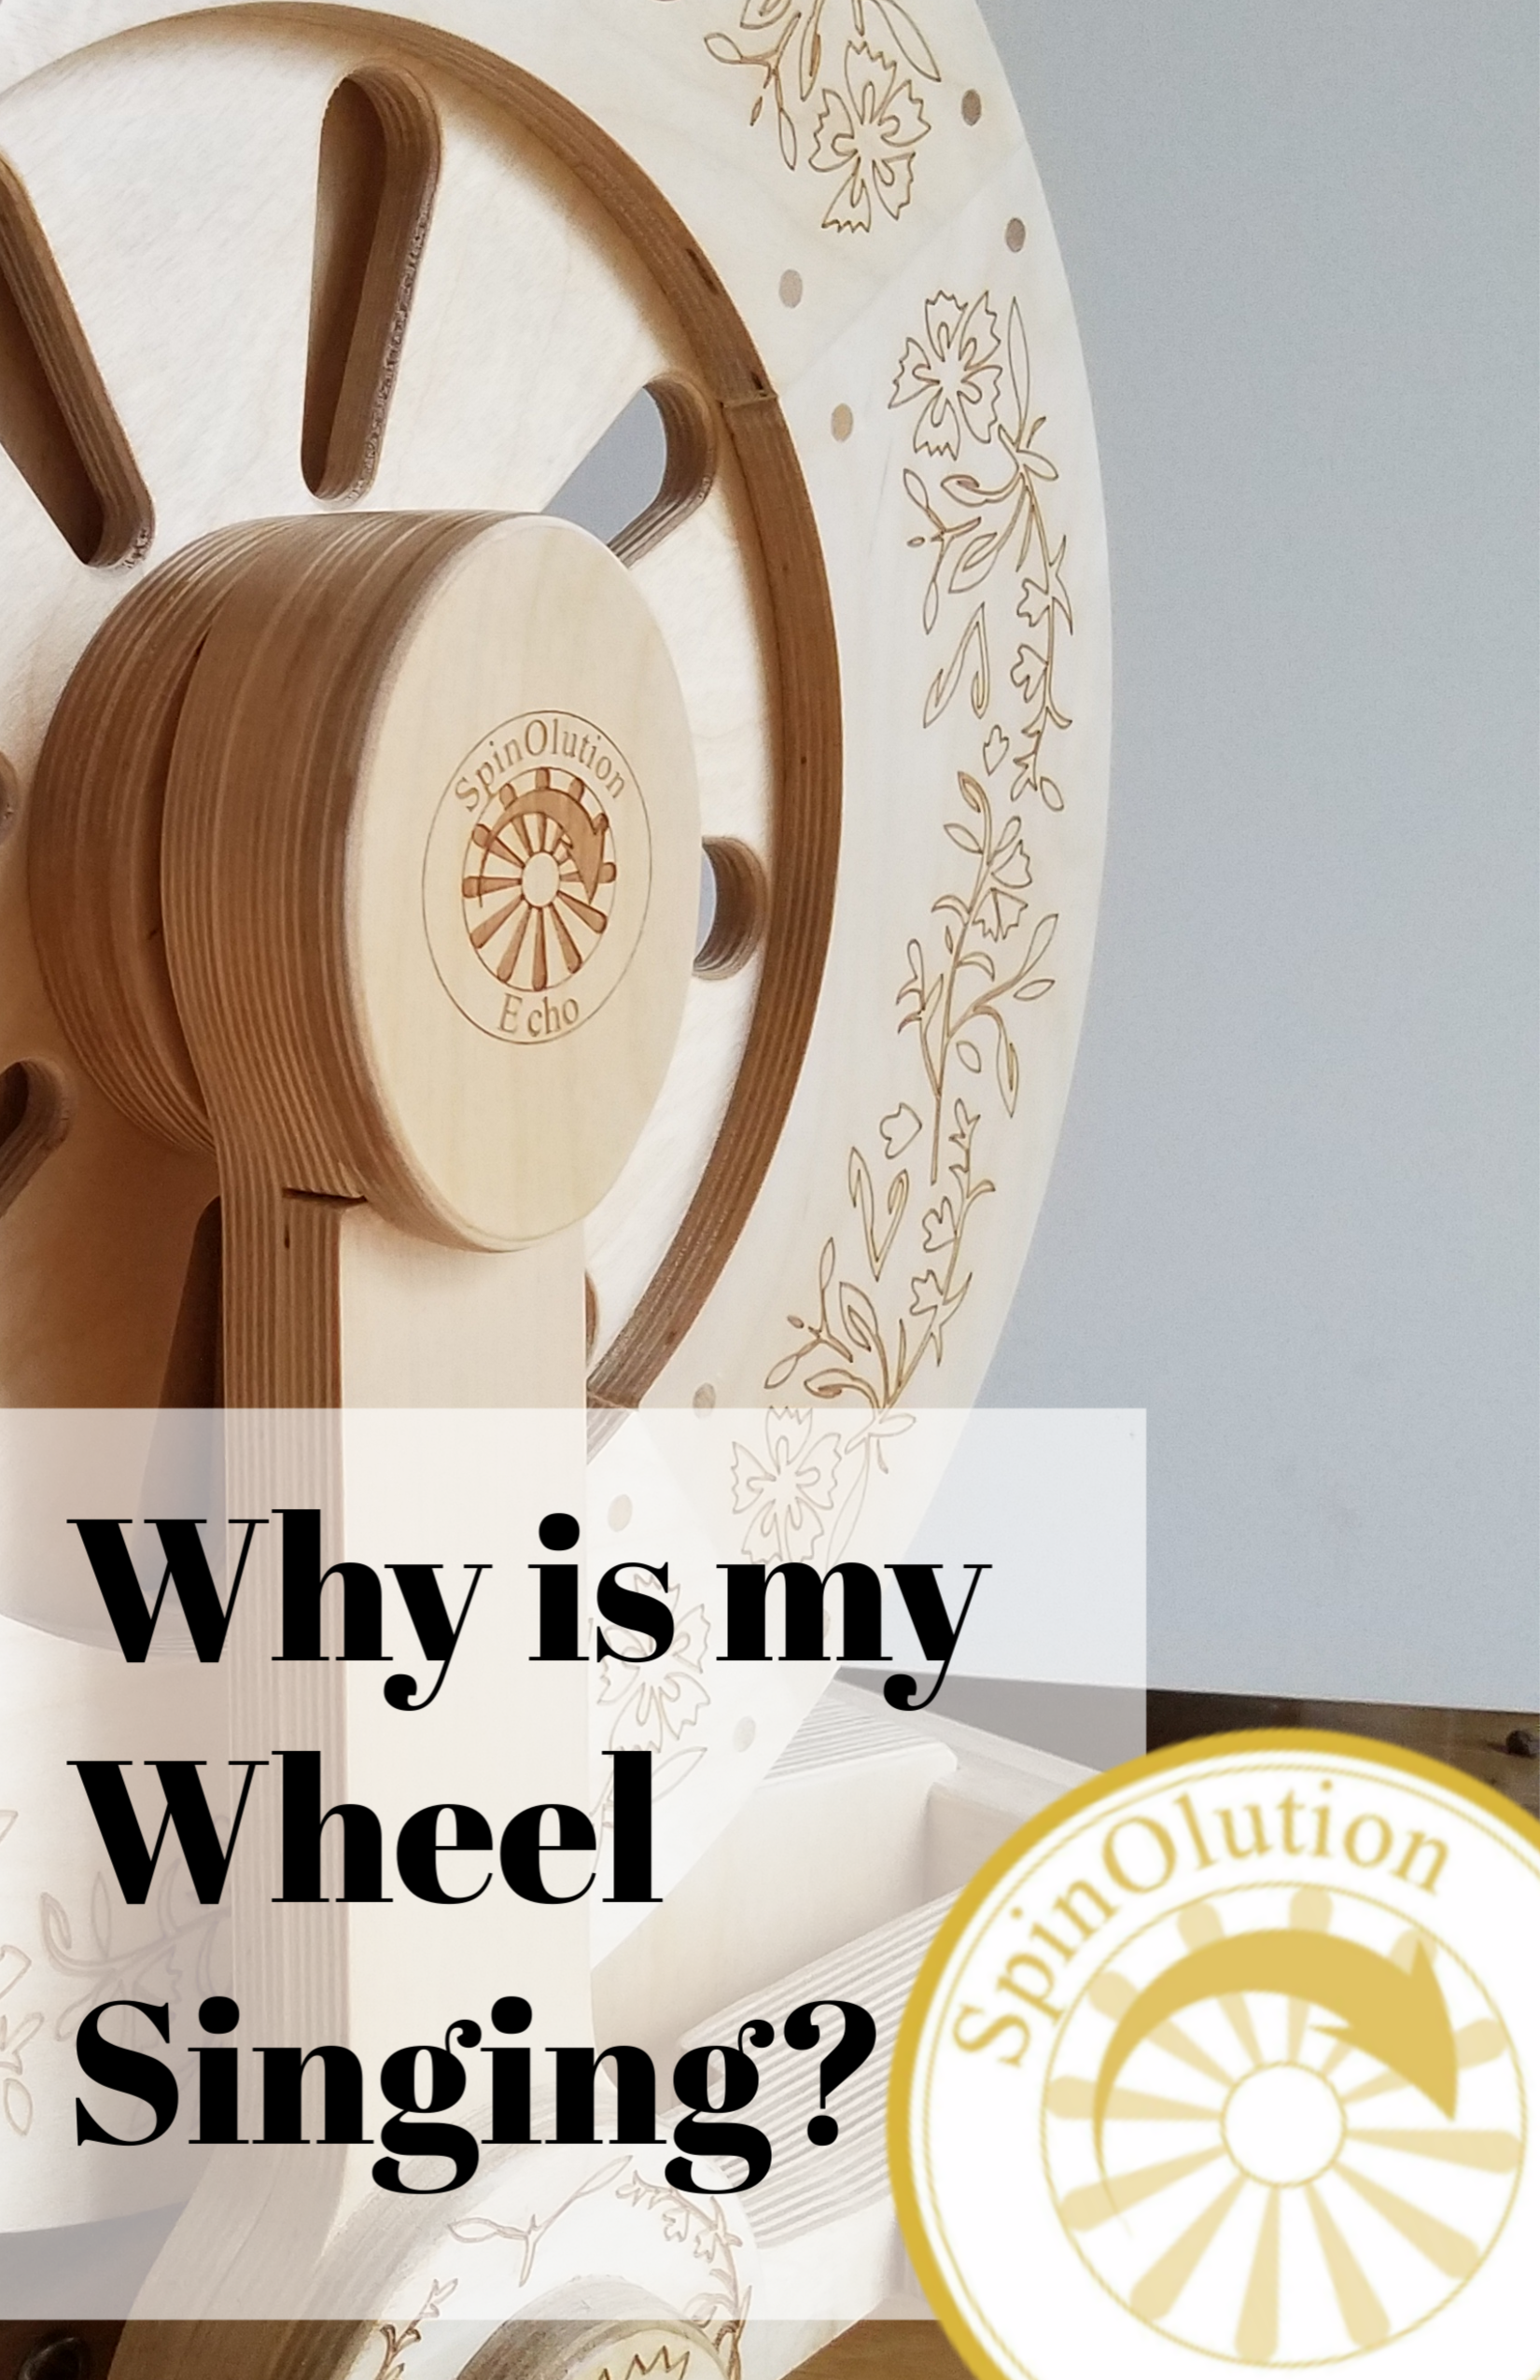 How to silence a singing spinning wheel — SpinOlution